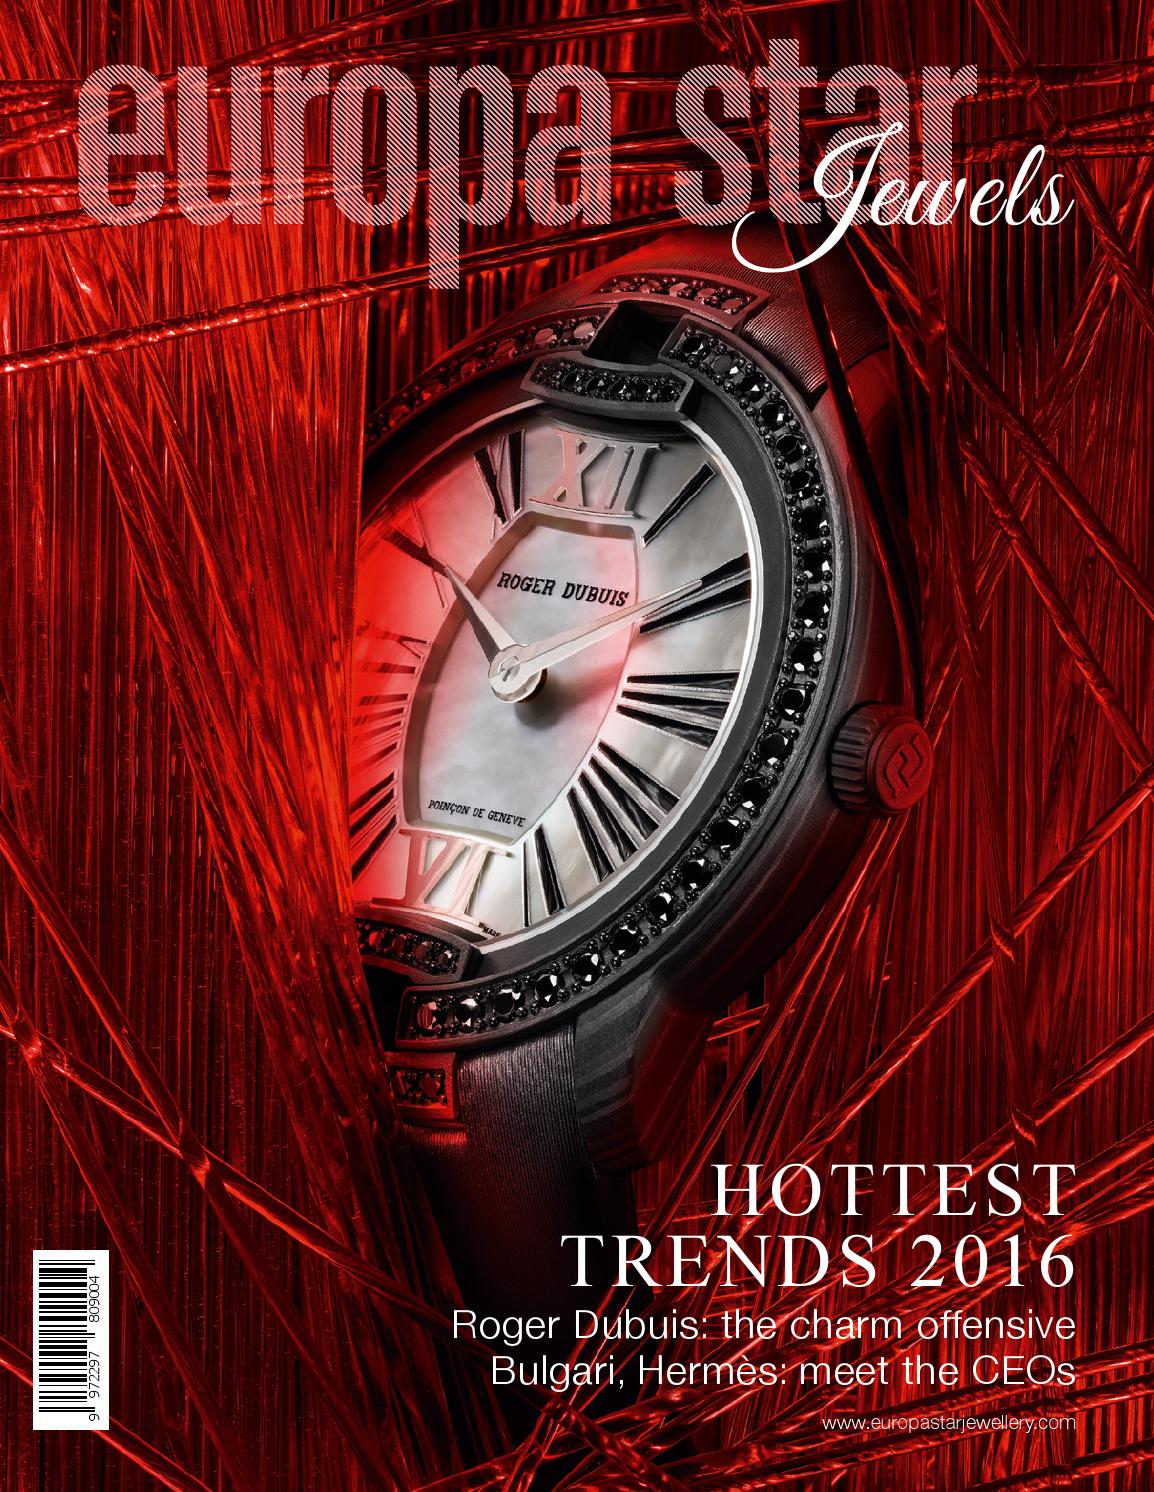 Prix Maison Igc Forum Europa Star Jewels Spring Issue 2016